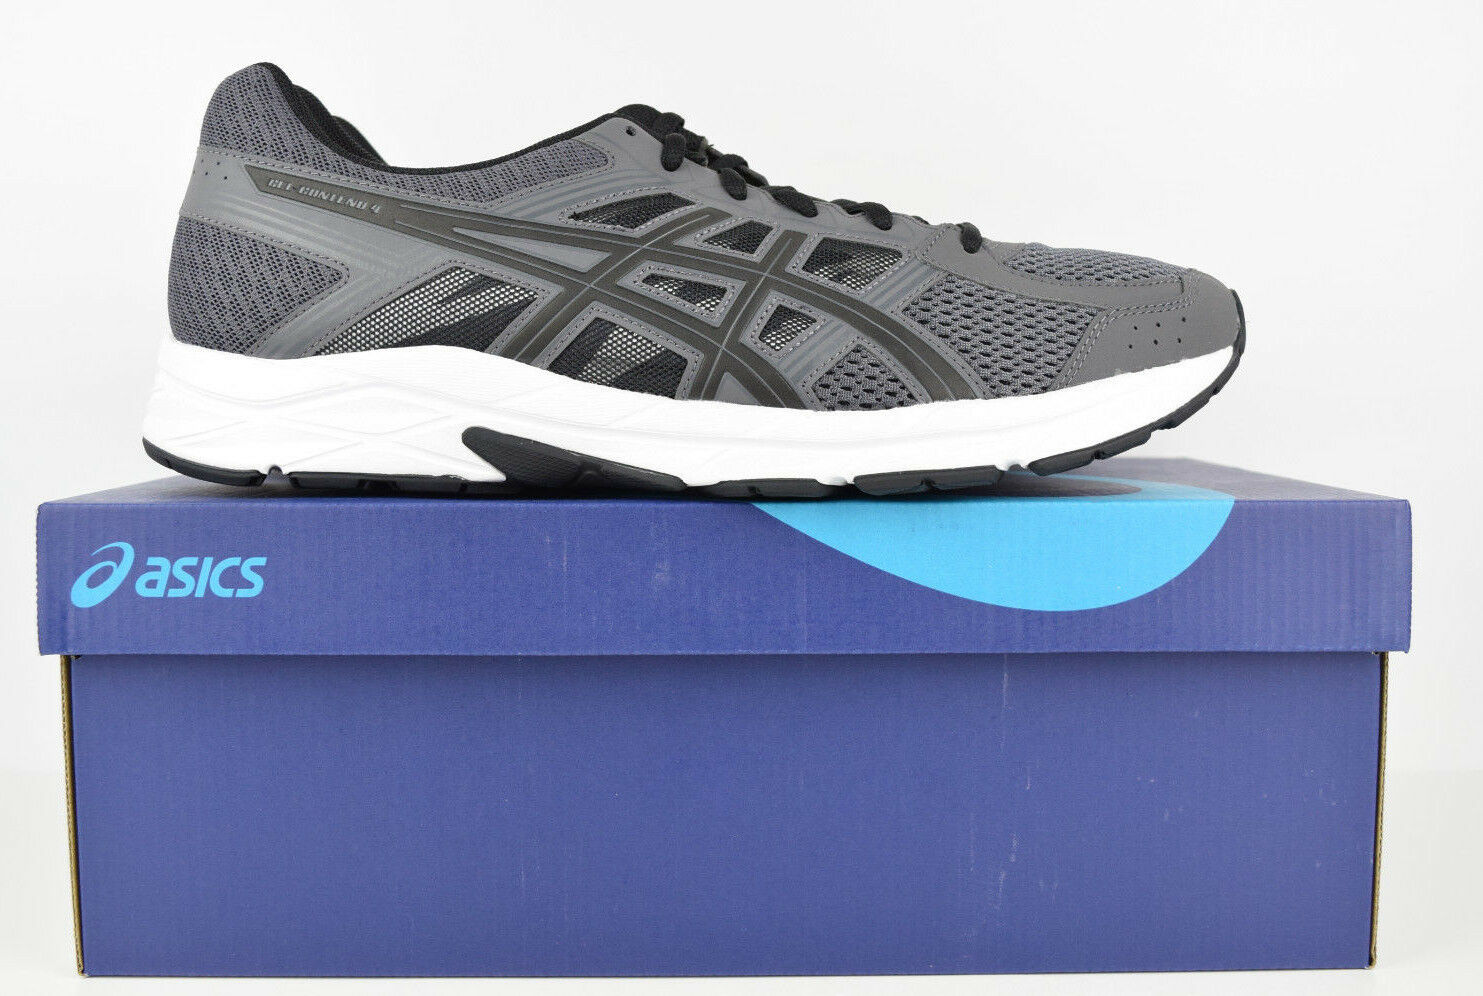 Asics Mens GEL Contend 4 Walking Fitness Trainer Running shoes Grey Size 12.5